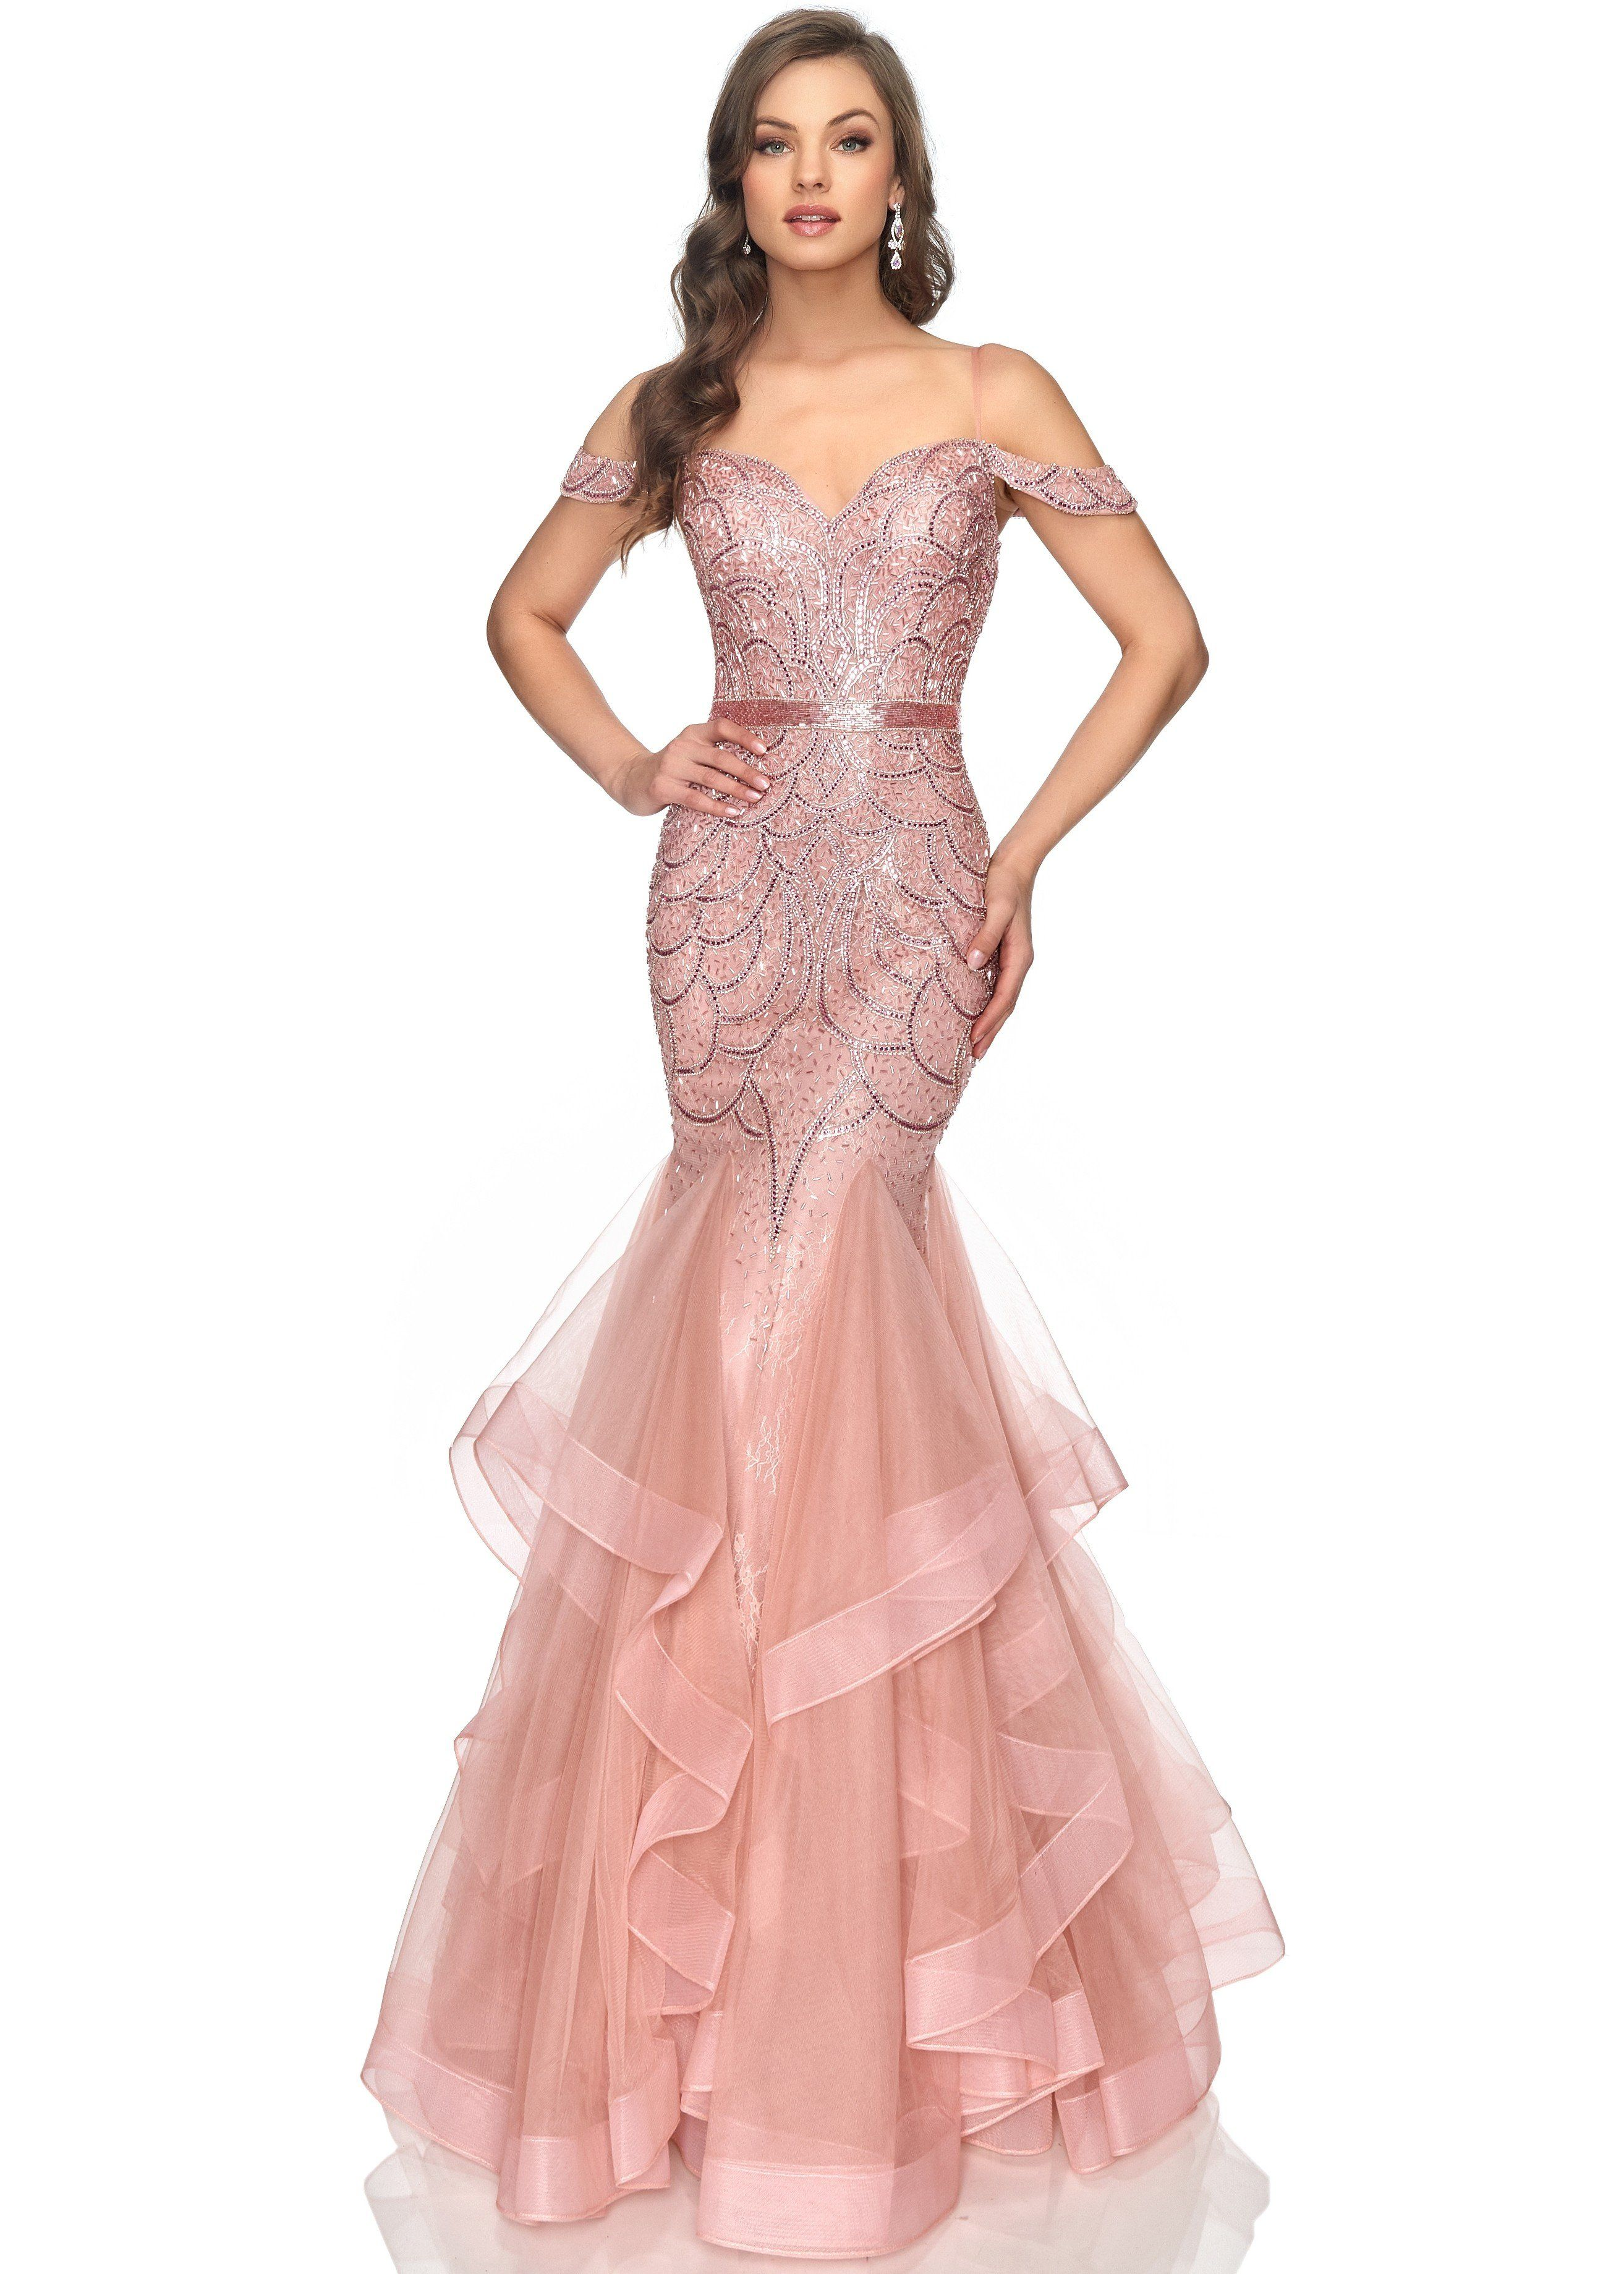 Lucci Lu 8 Rose Gold Beaded and Tulle Mermaid Gown  Pageant